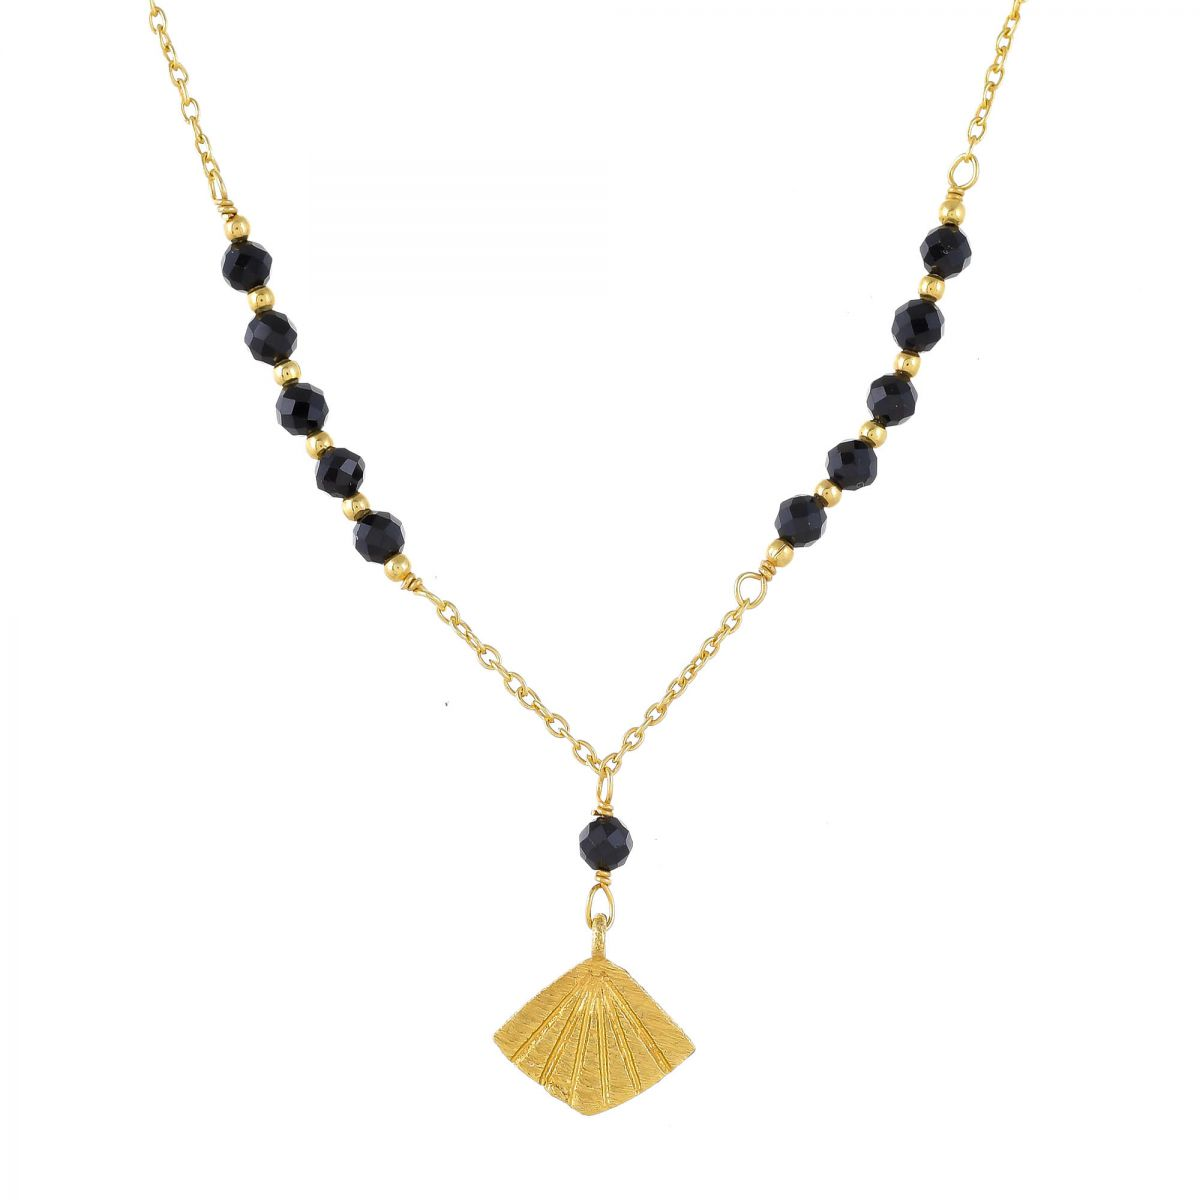 jcollier black agate beads with flabellete gold plated